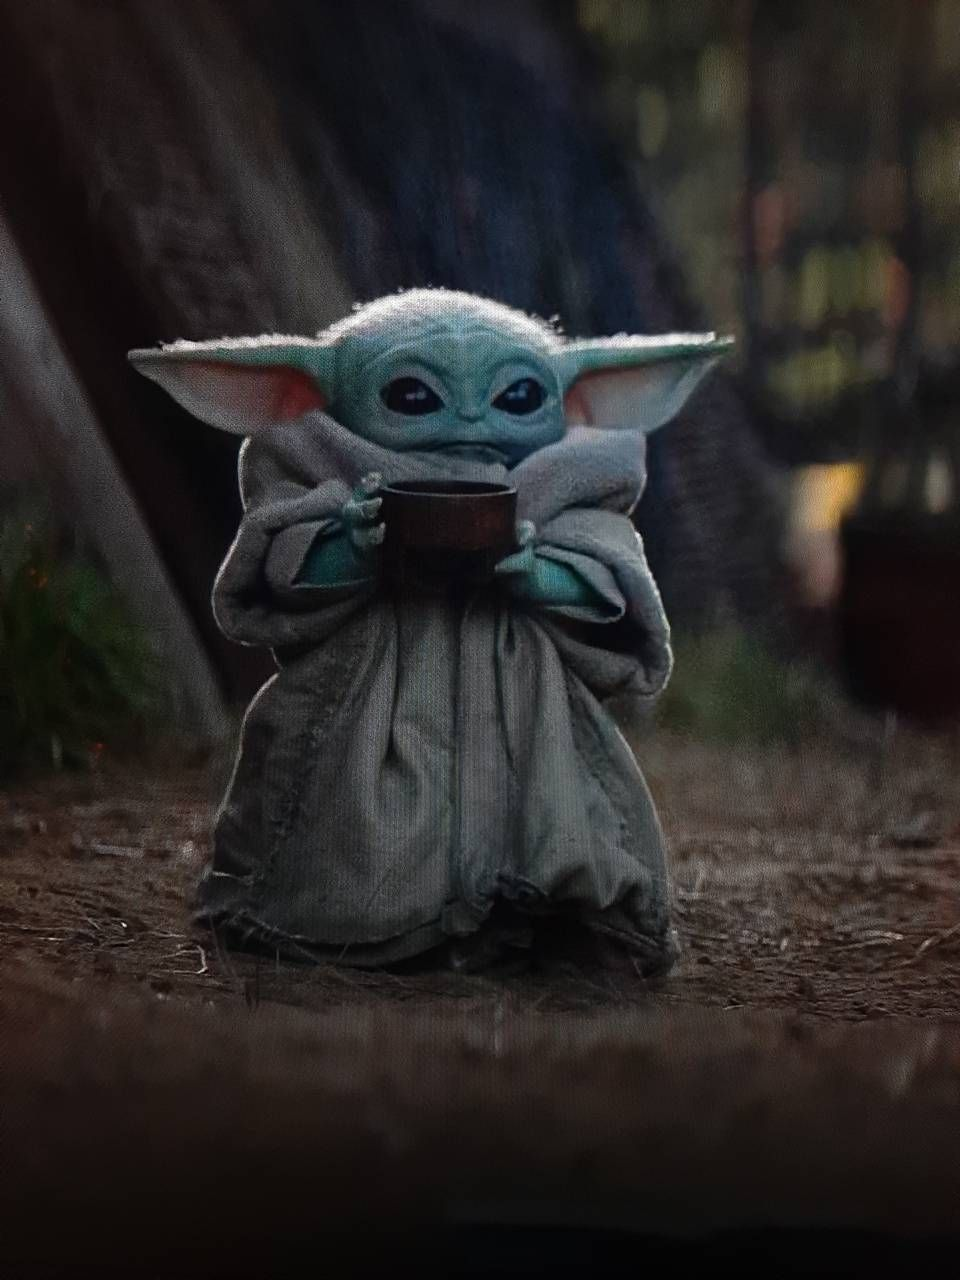 Baby Yoda Wallpaper By Neonlight03 45 Free On Zedge Yoda Wallpaper Cute Wallpaper Backgrounds Cute Wallpaper For Phone